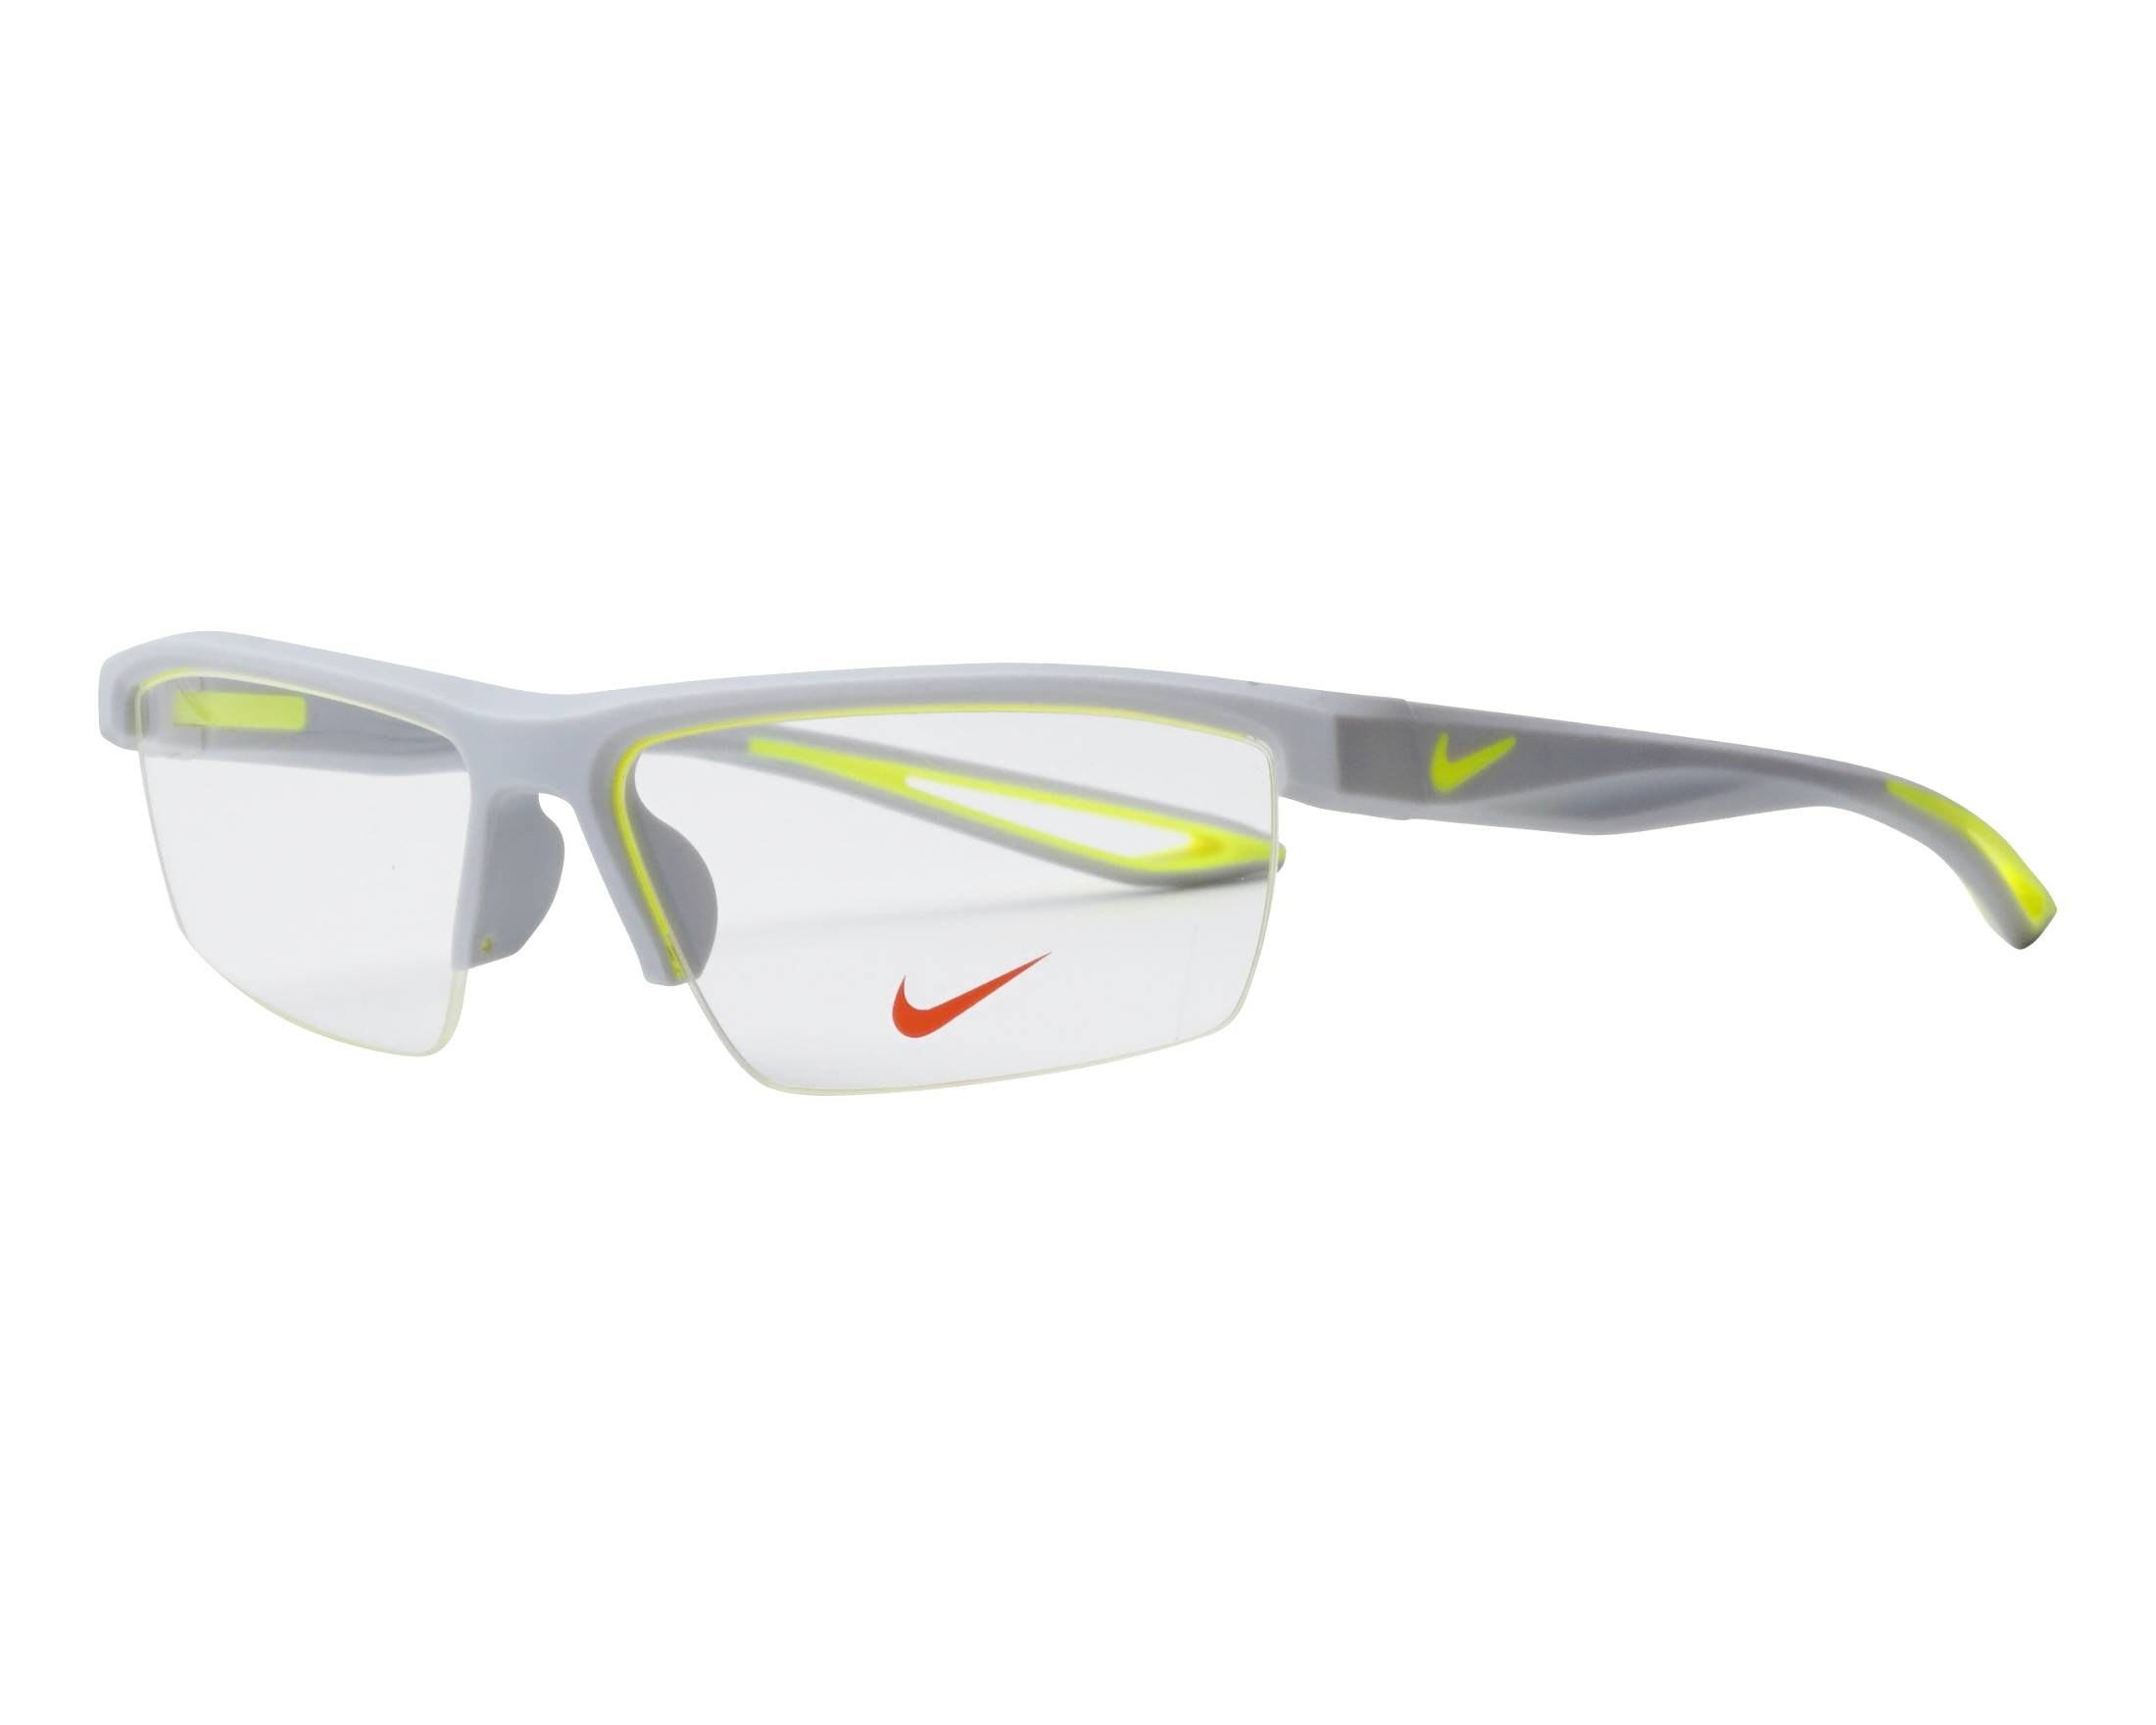 eyeglasses Nike 7079 040 57-15 Grey Yellow profile view 50cbc713c9805